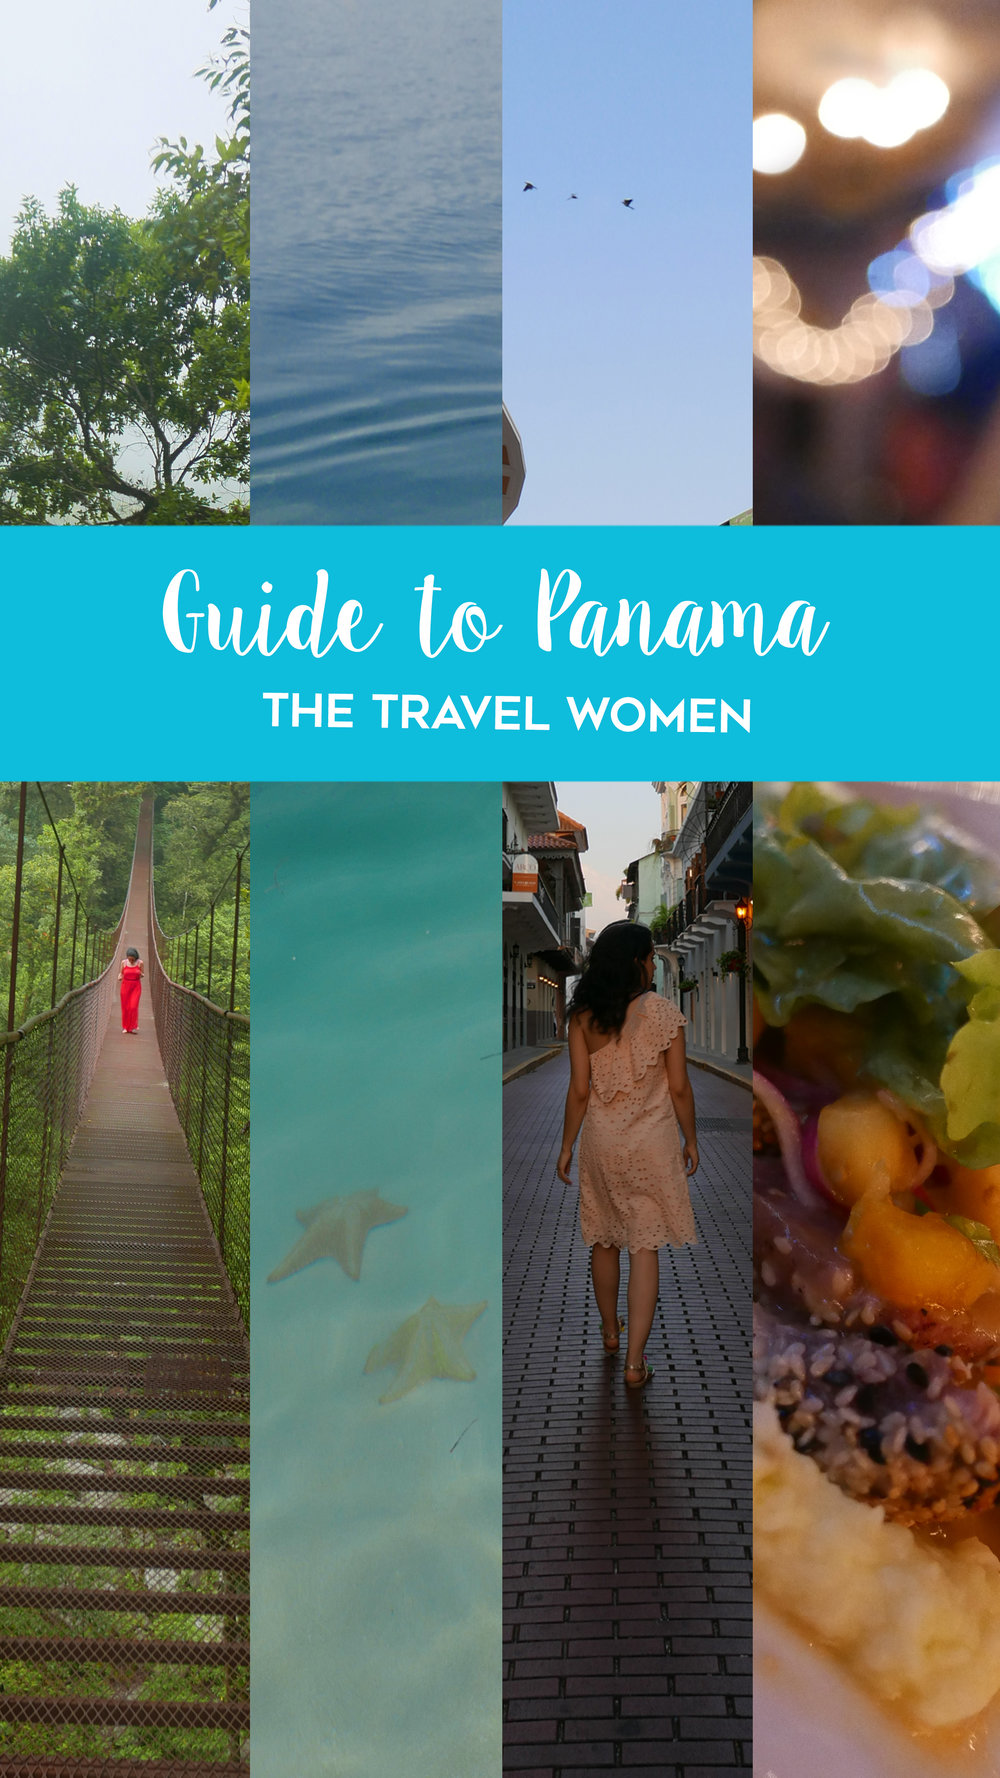 Guide to Panama Pinterest Badge